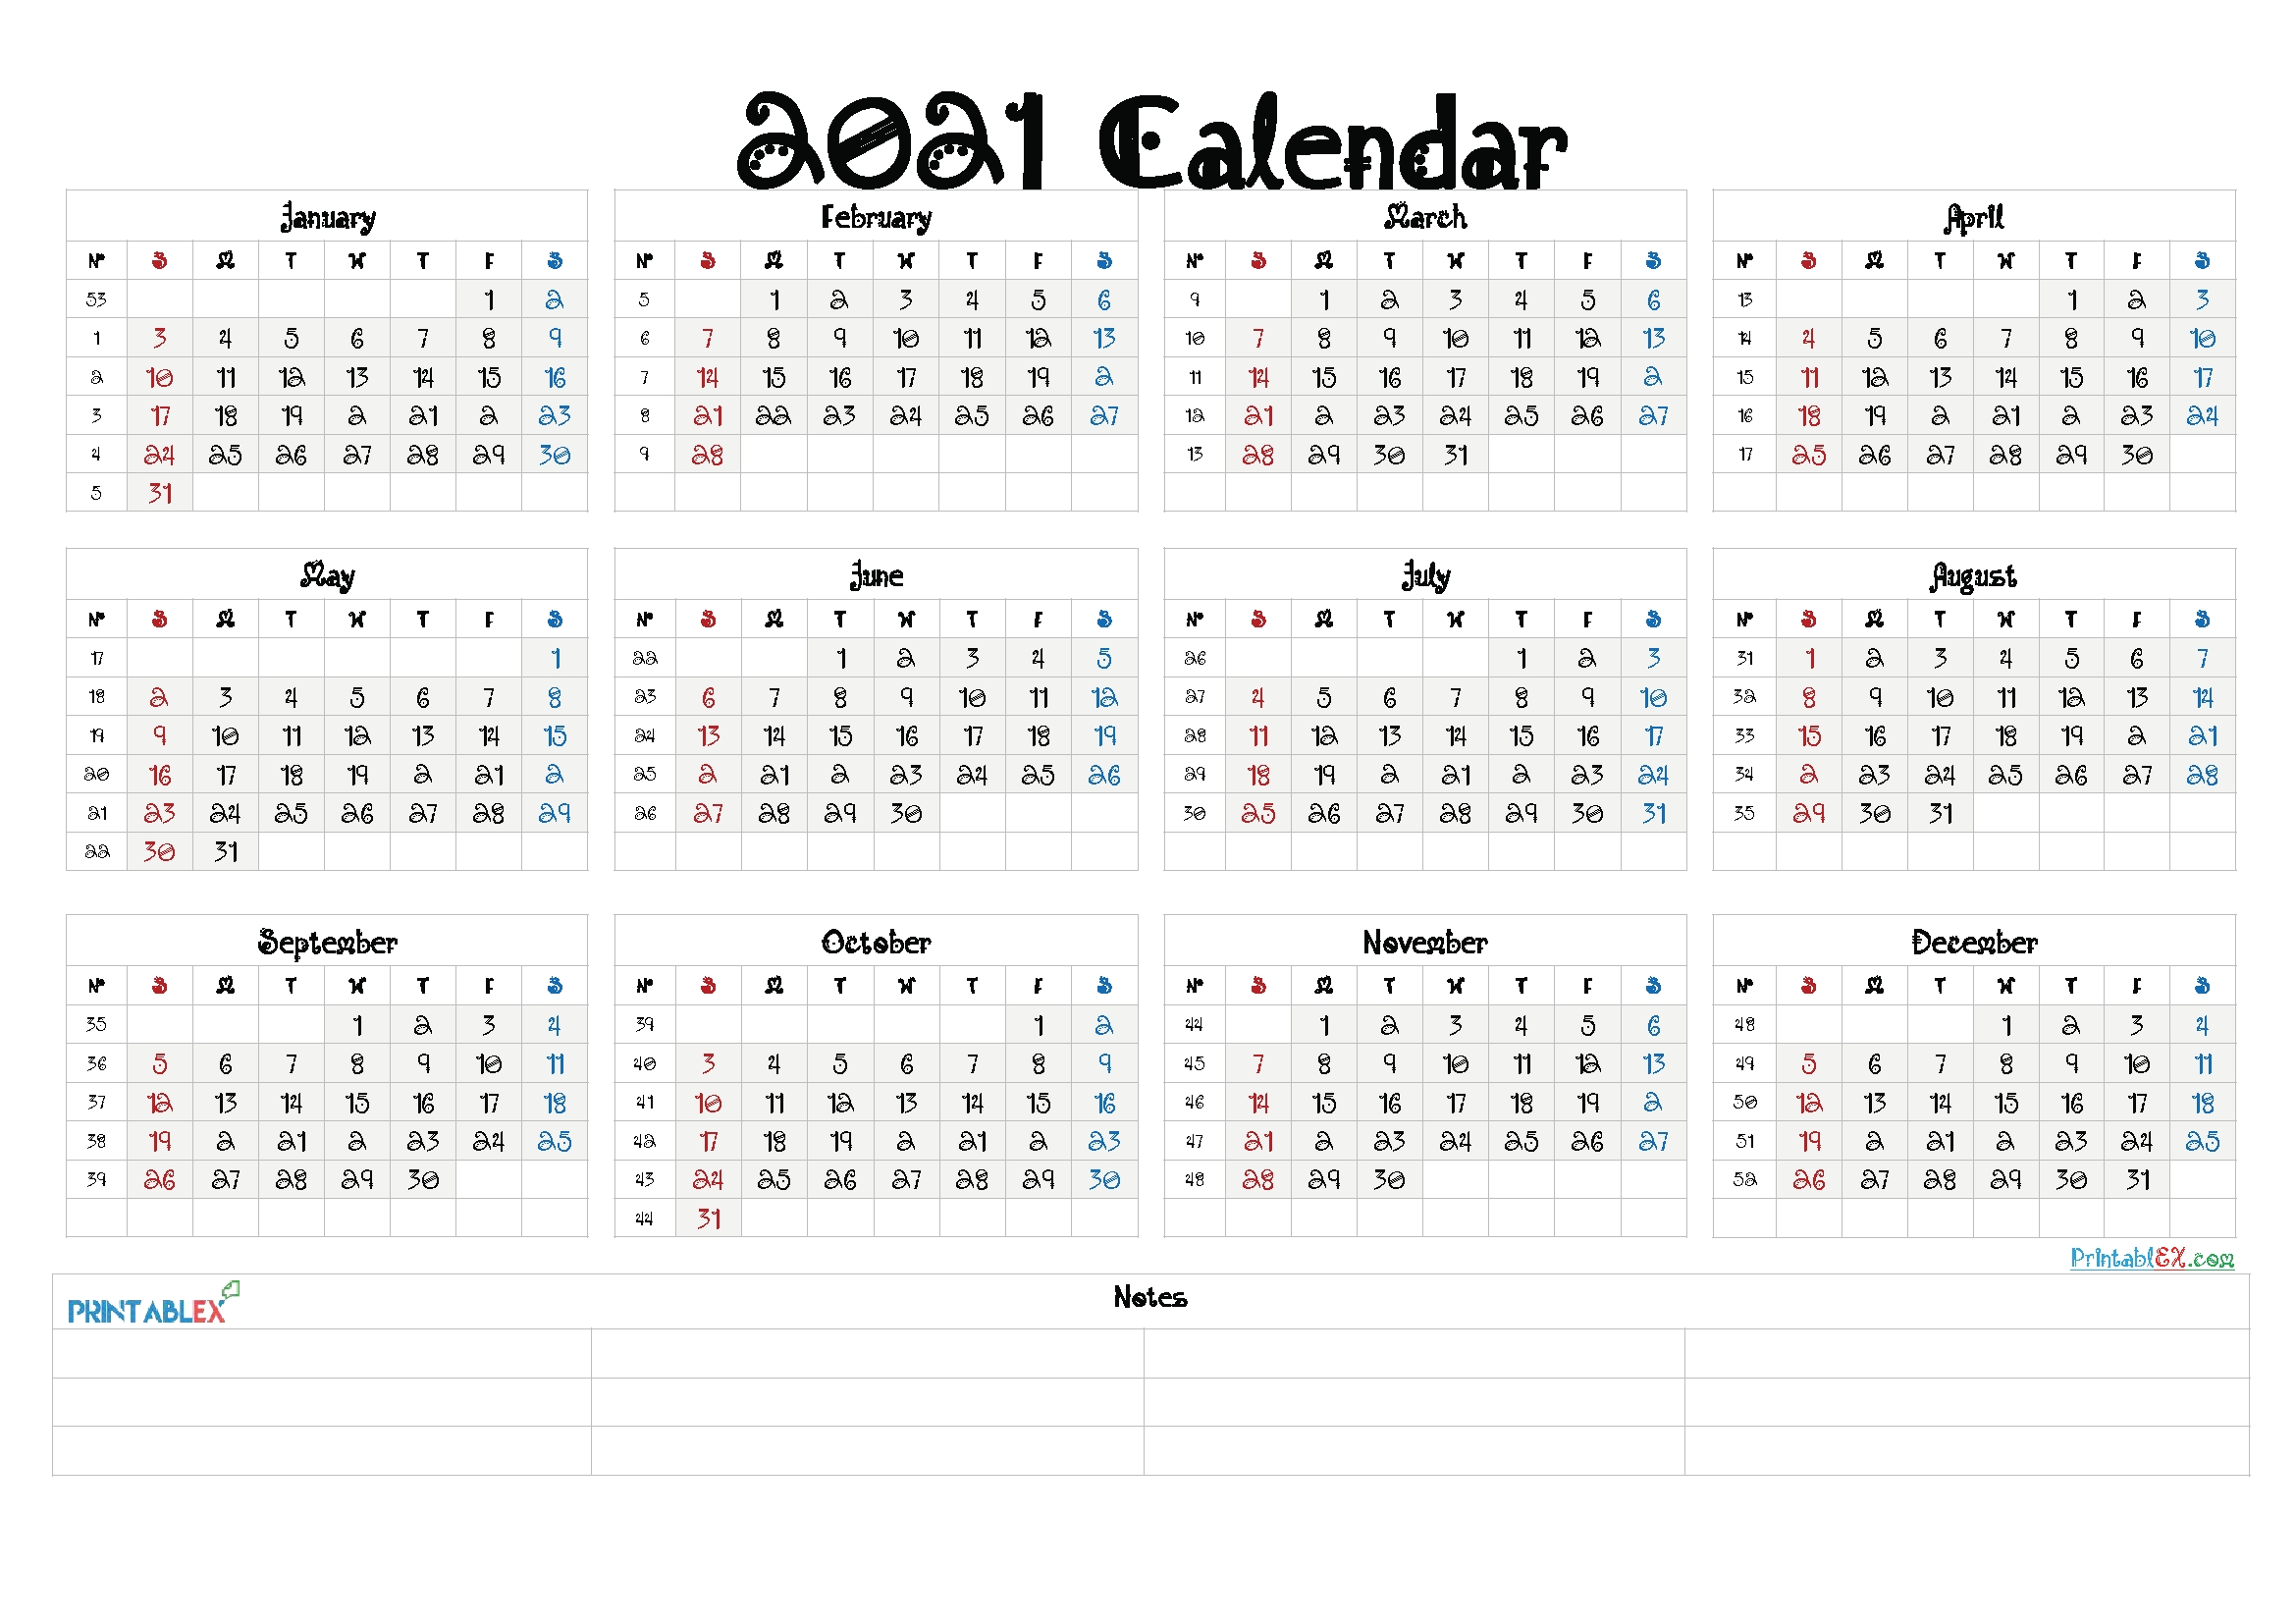 2021 Calendar Template Pdf, Word, Excel Free Download intended for 2021 Calendar Printable Free